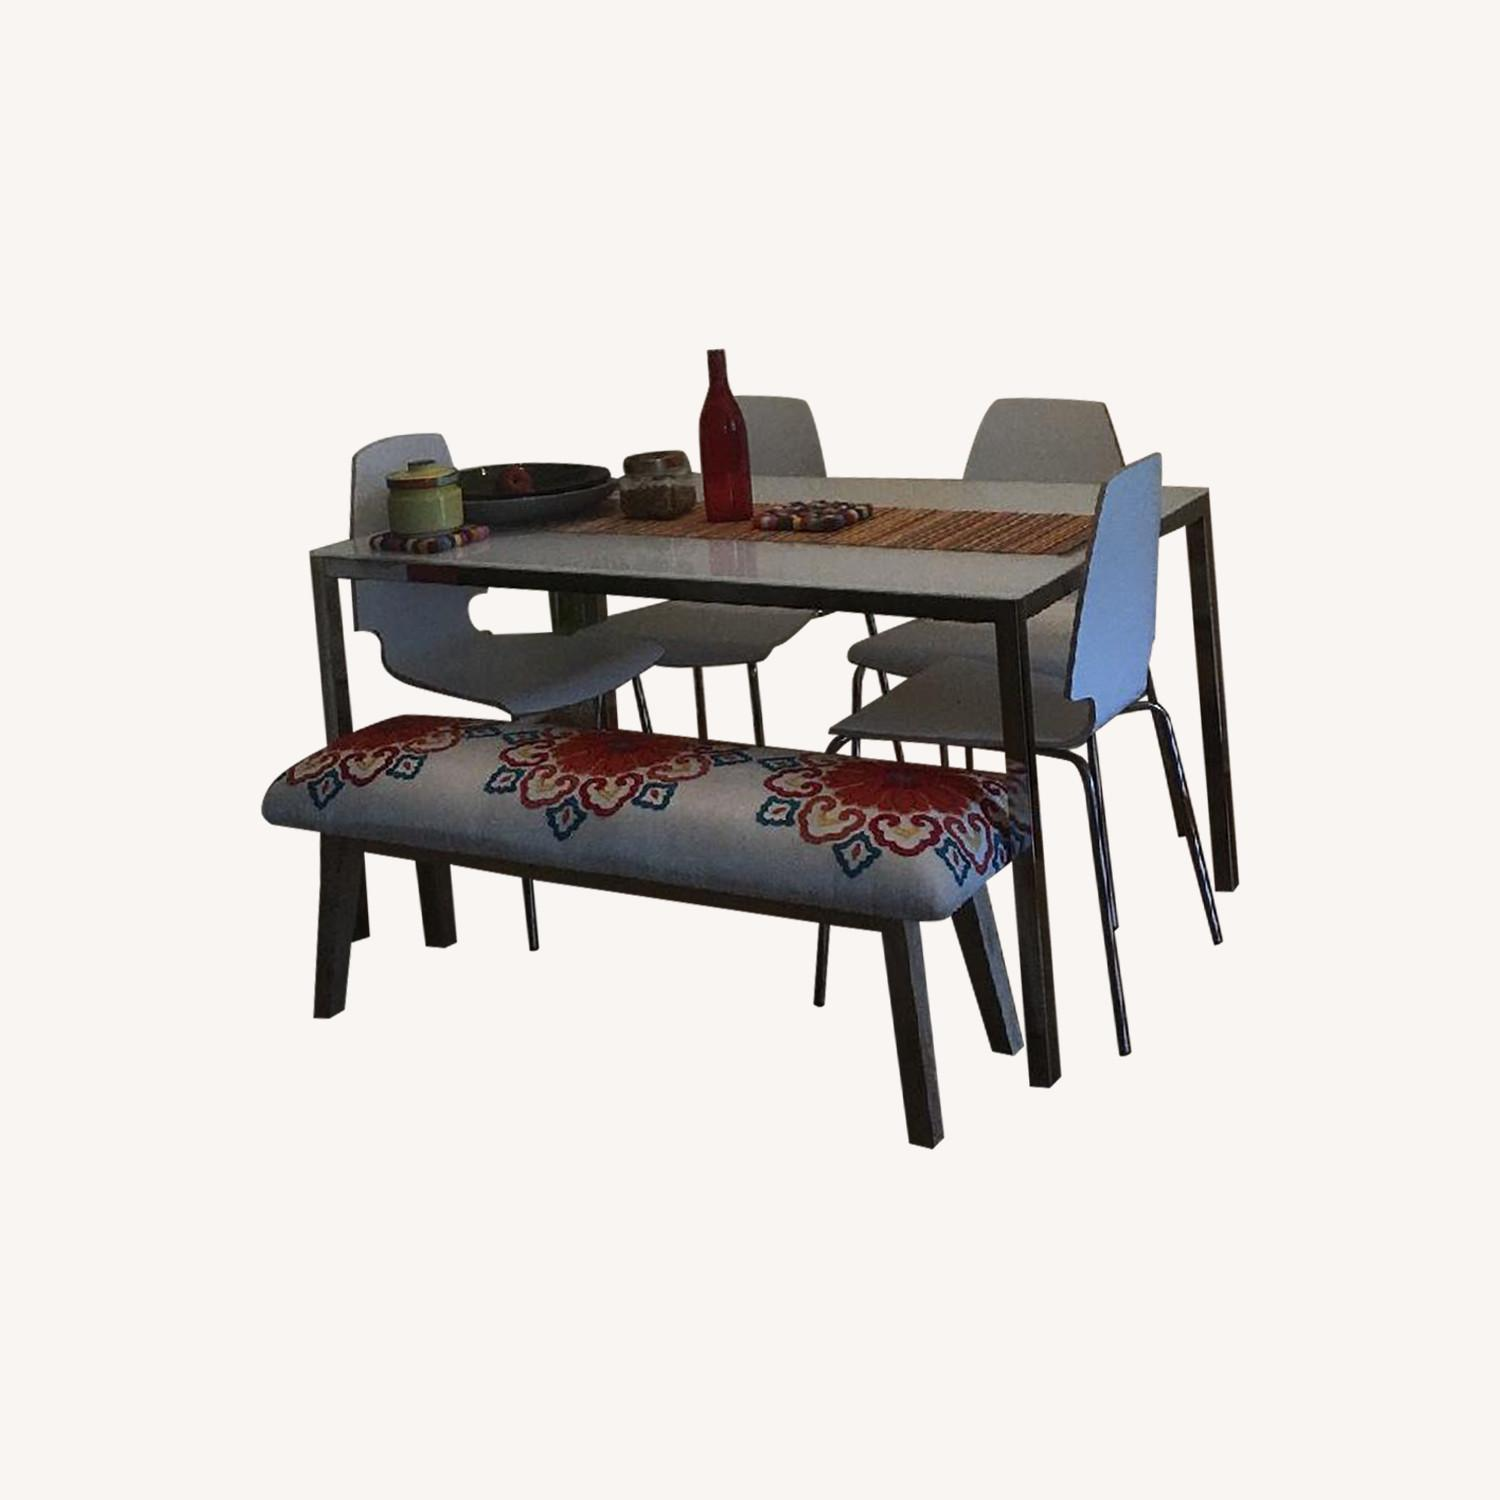 Ikea Contemporary Glass Top Dining Table w/ 4 Chairs - image-0